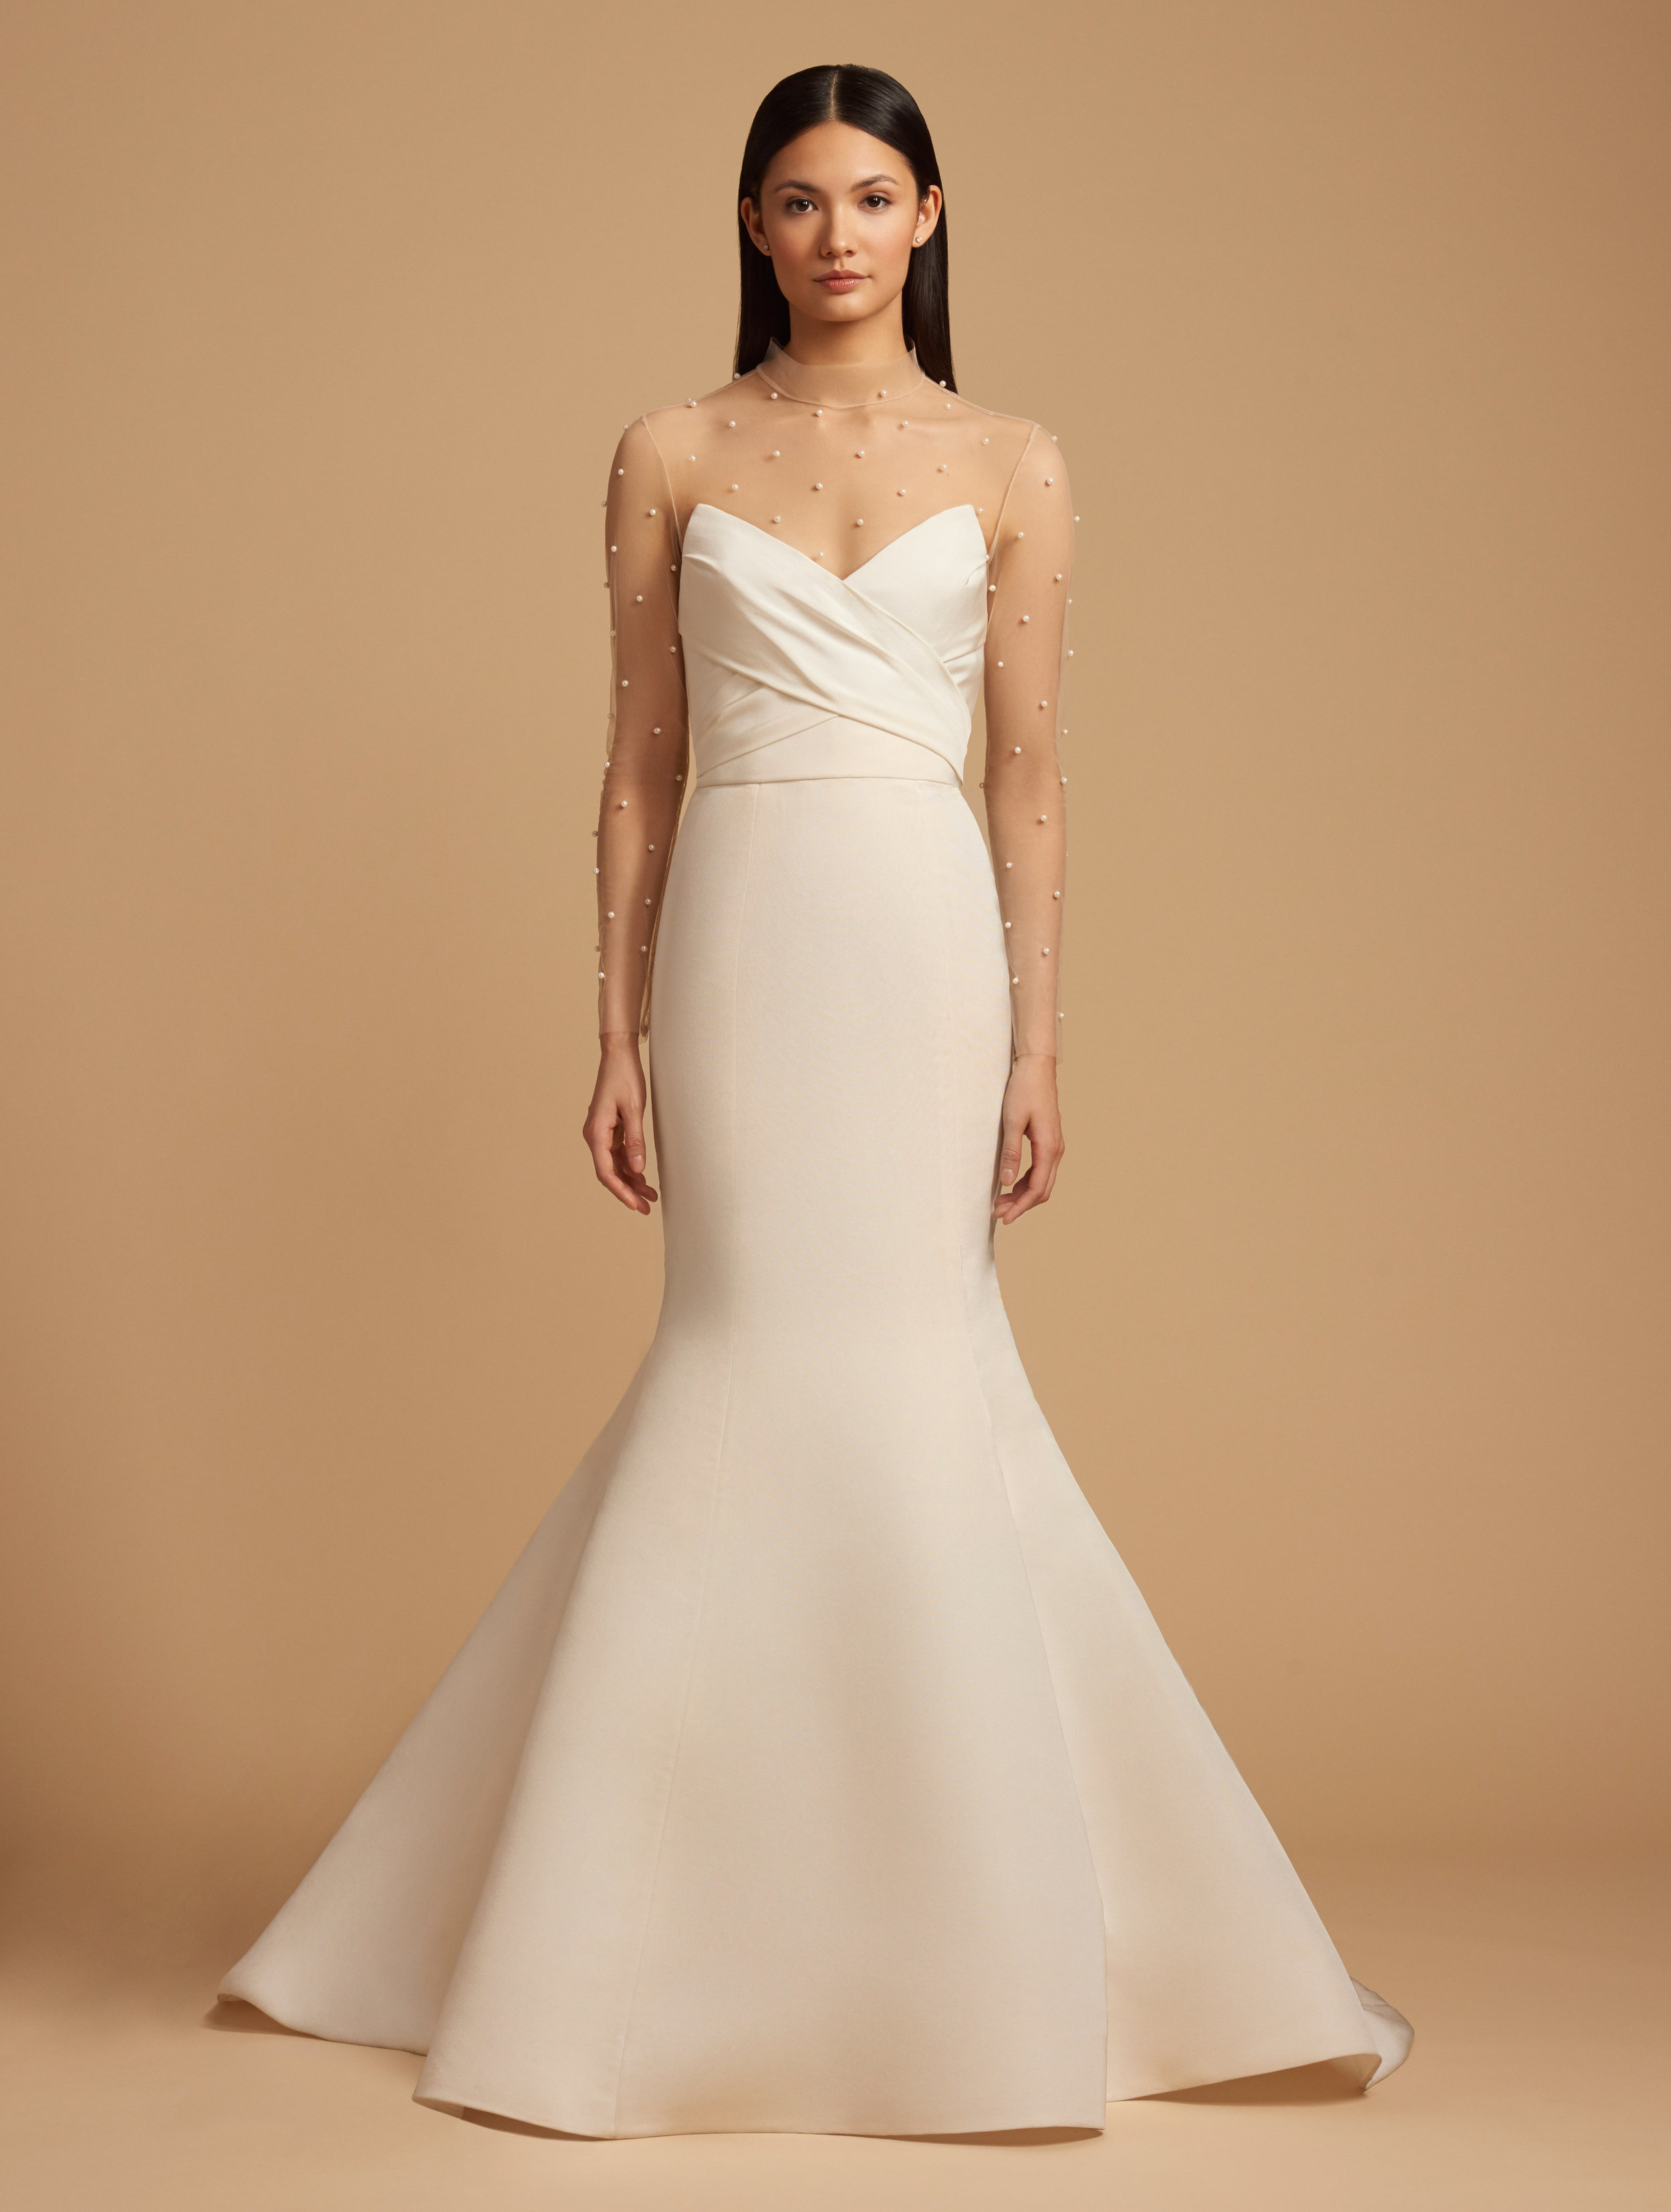 Allison Webb Bridal Meredith Silk Fit to Flare Wedding Dress with Pearls